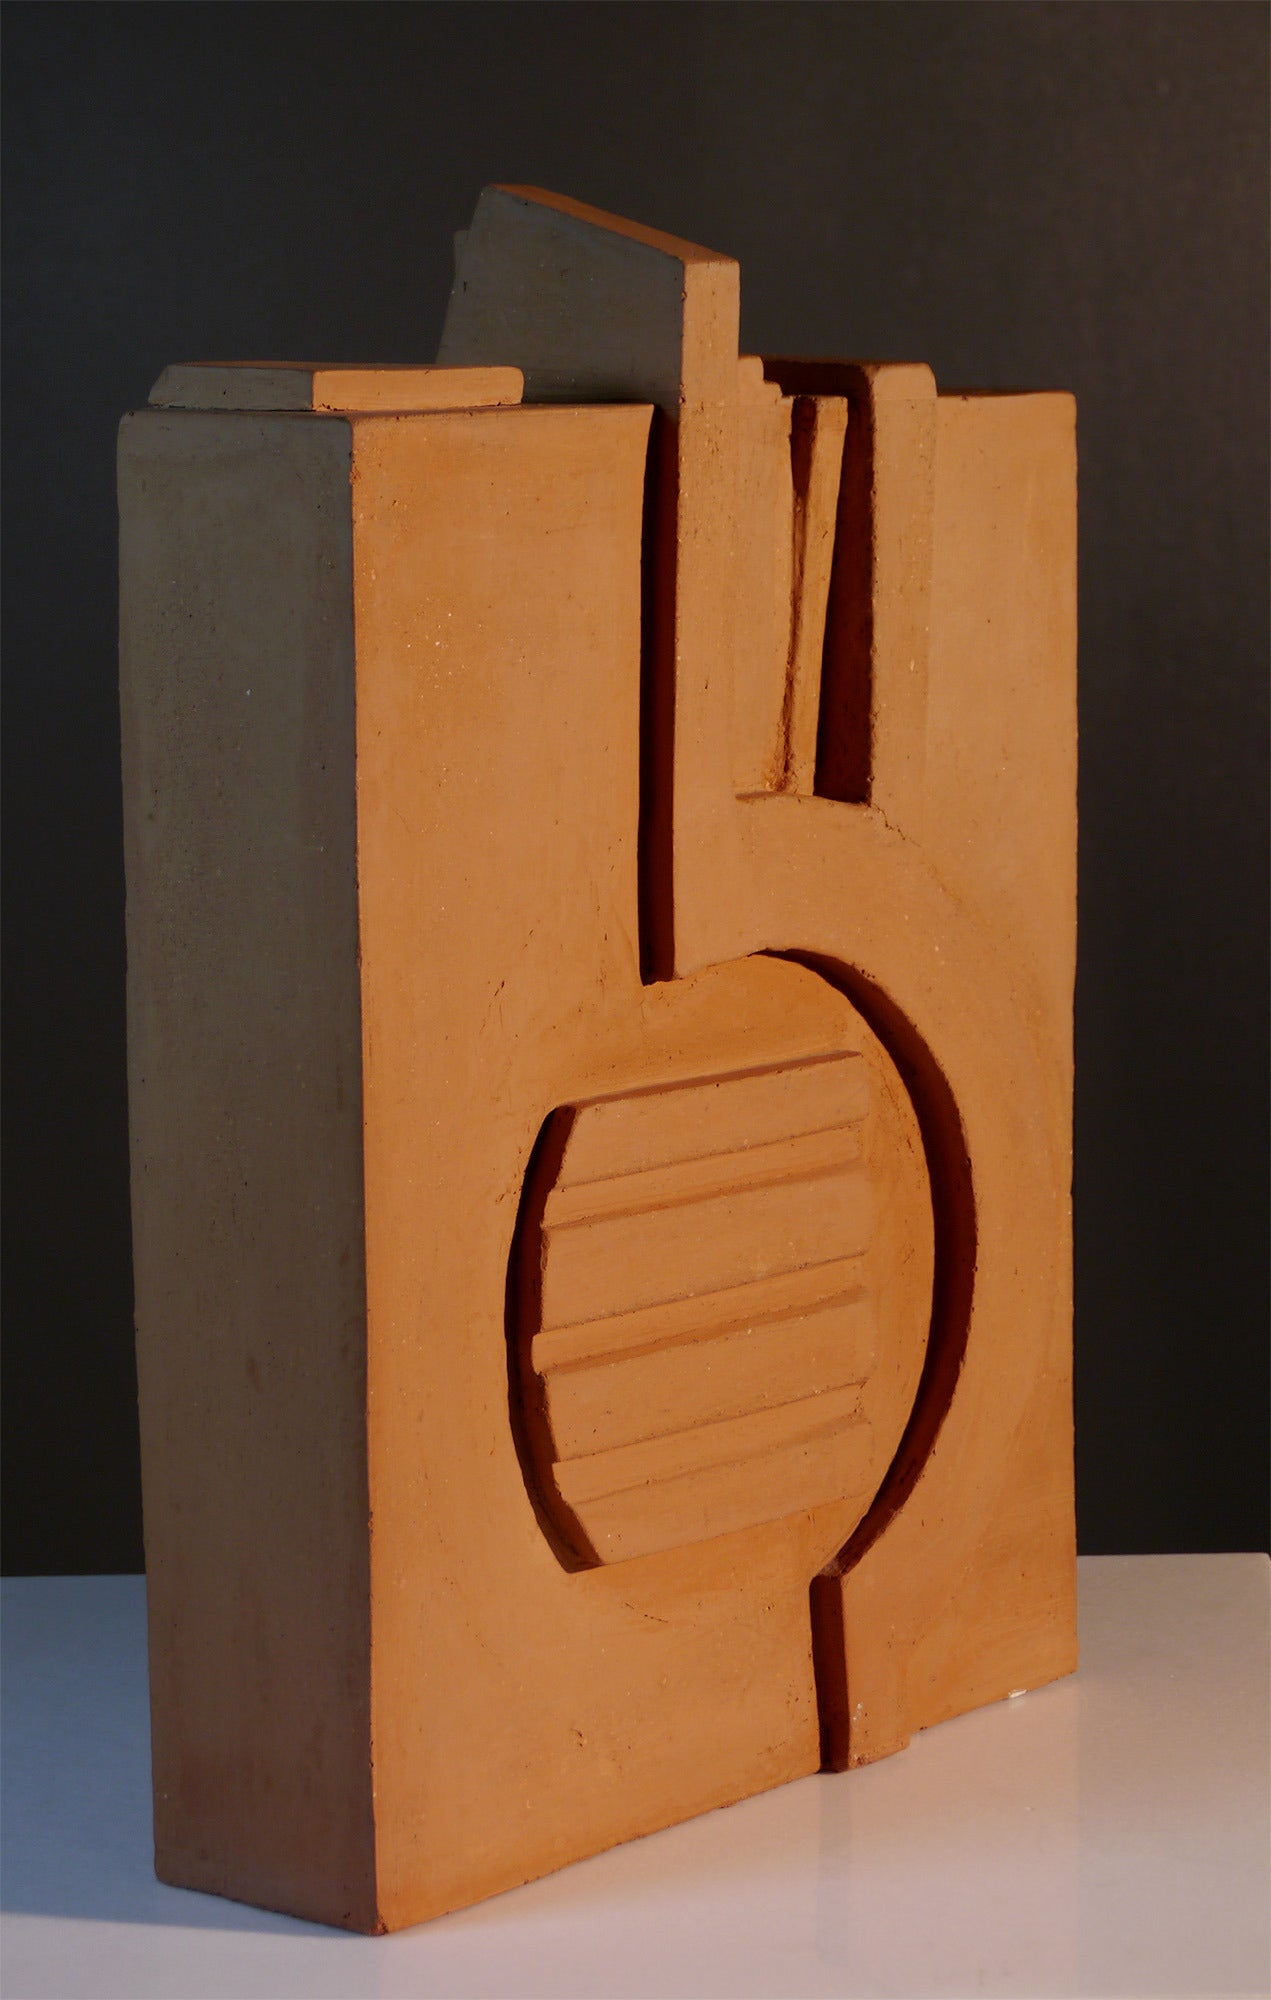 Late 20th Century Ocher Earth Sculpture by Jacques Barbier, 1990 For Sale